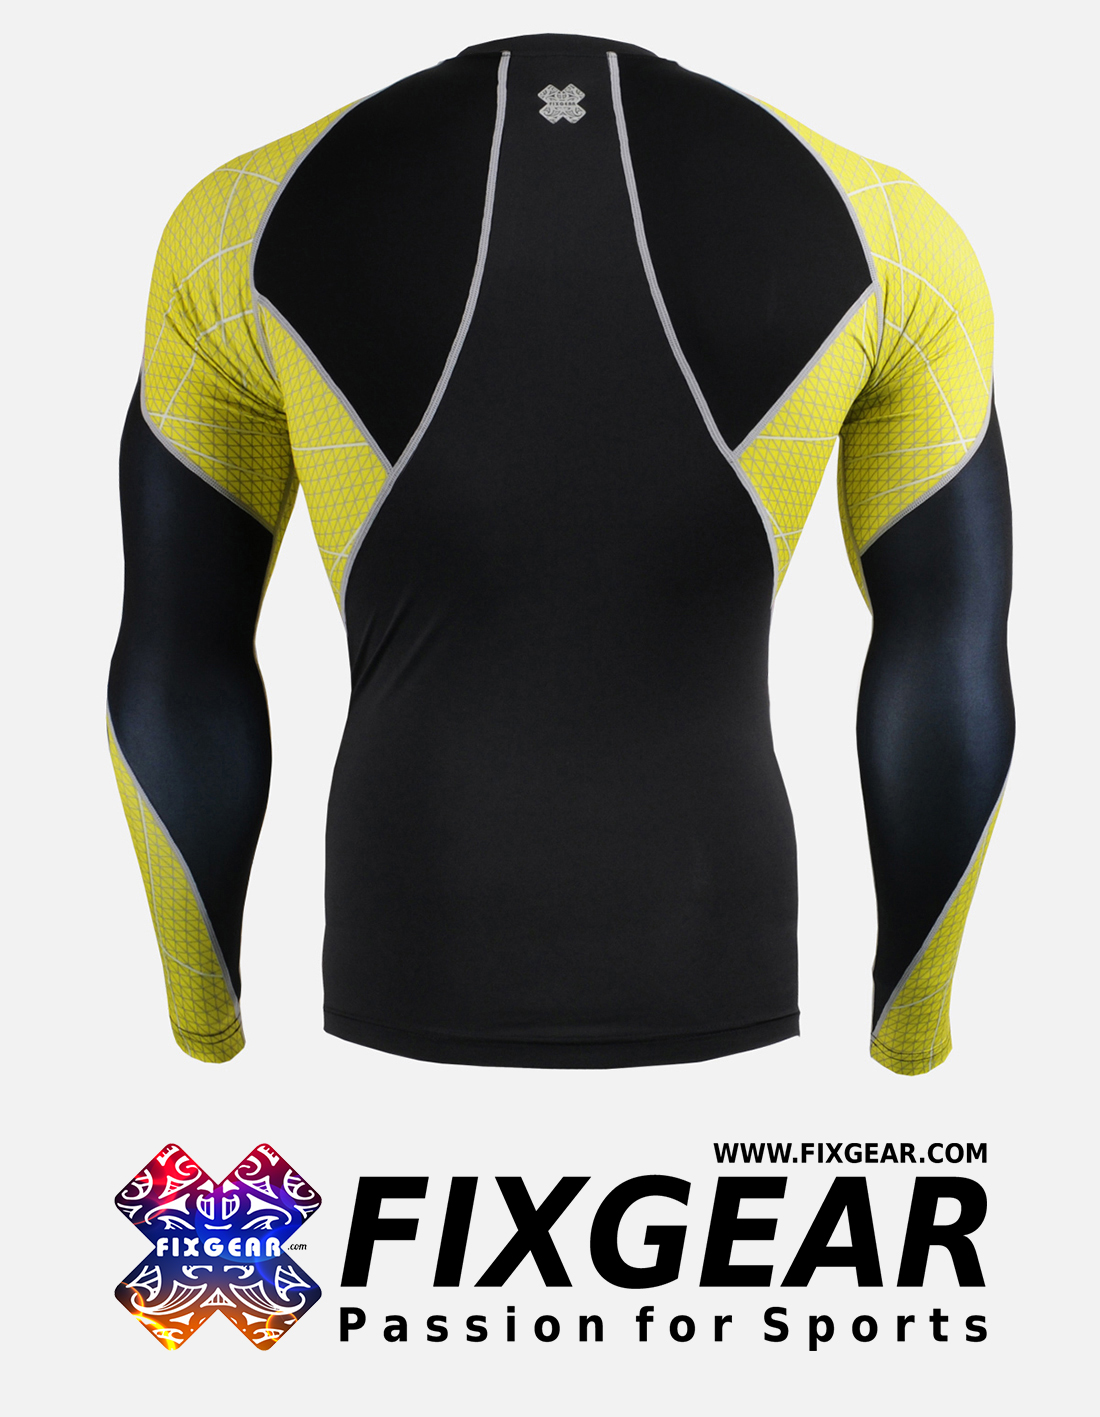 FIXGEAR C3L-B70Y Compression Base Layer Shirt